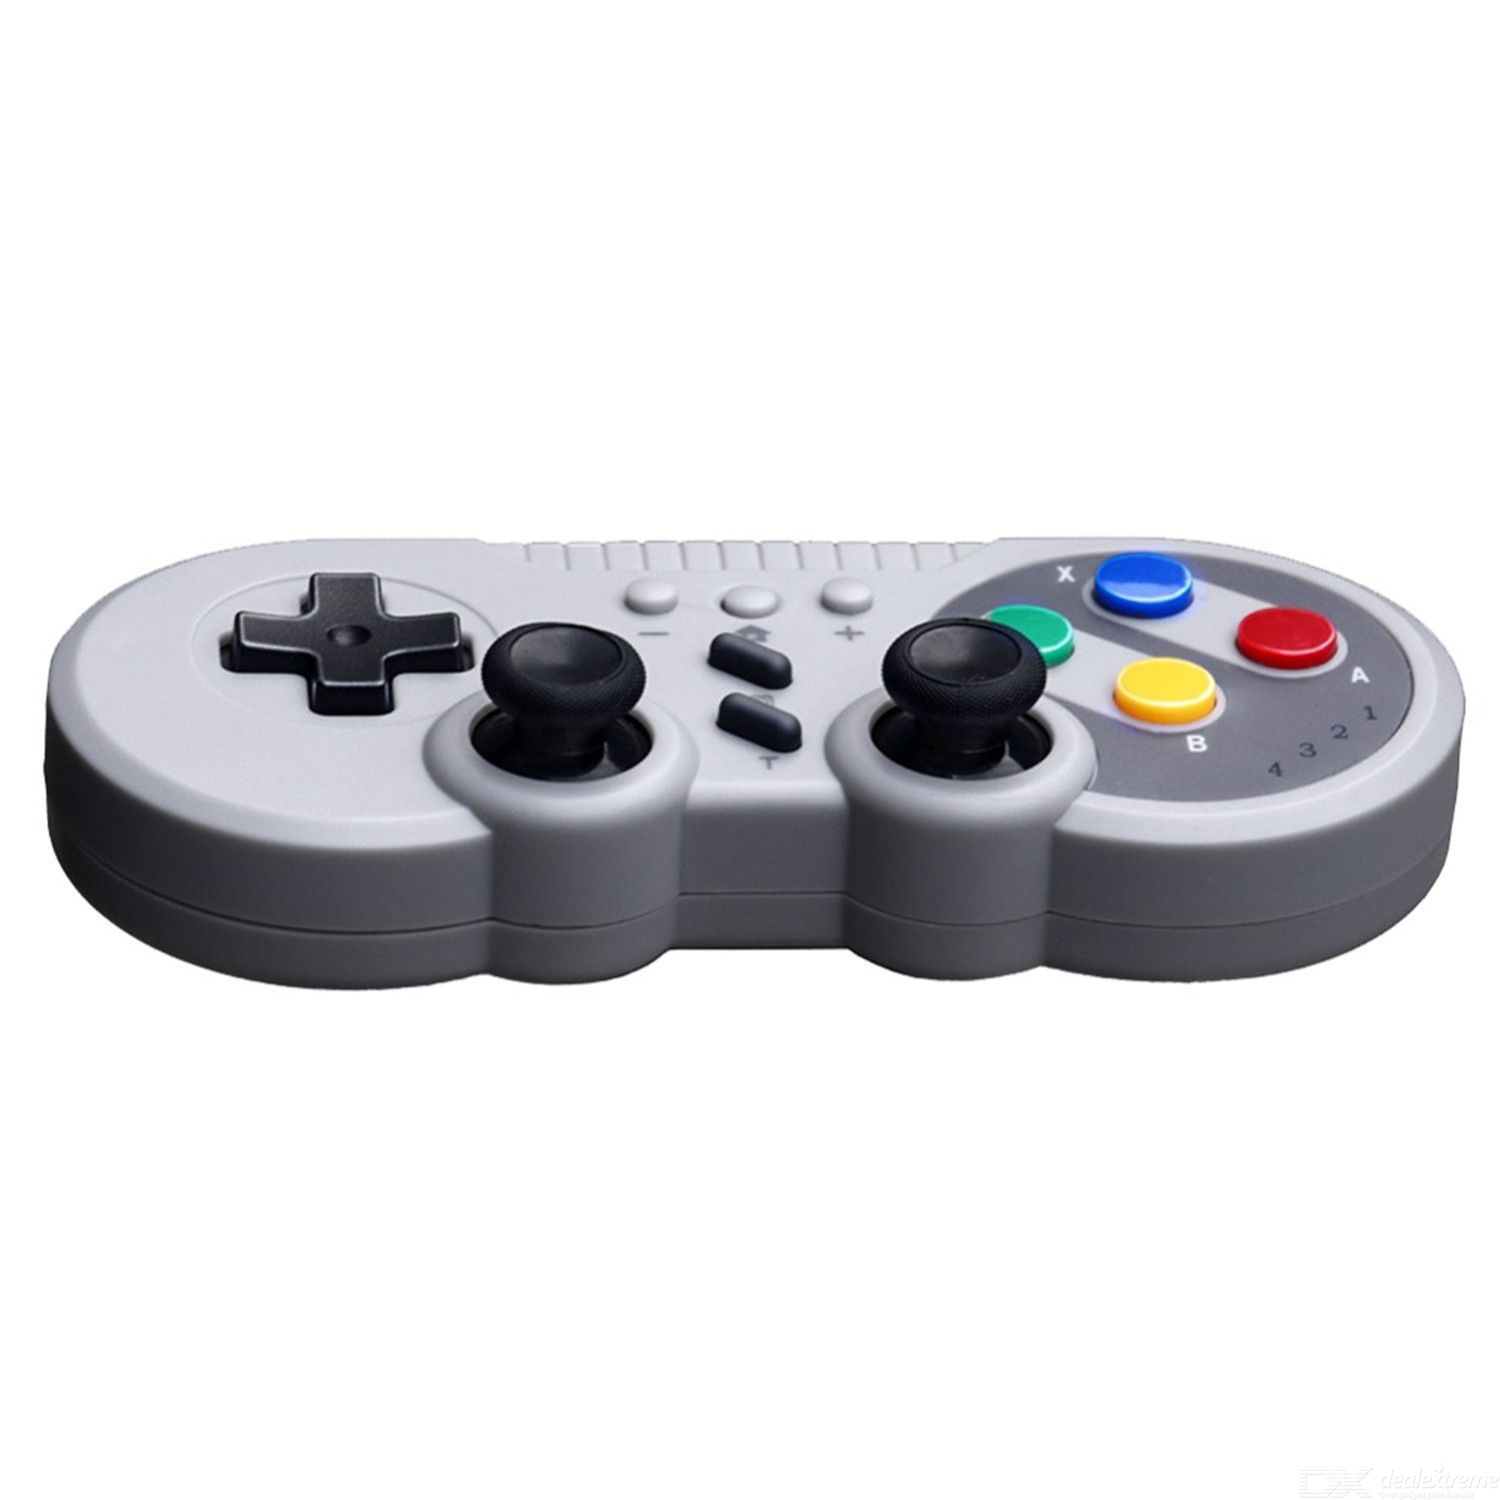 game handle compatible with switch pro, wireless Bluetooth, and supports PC double shock continuous shot motion sensing